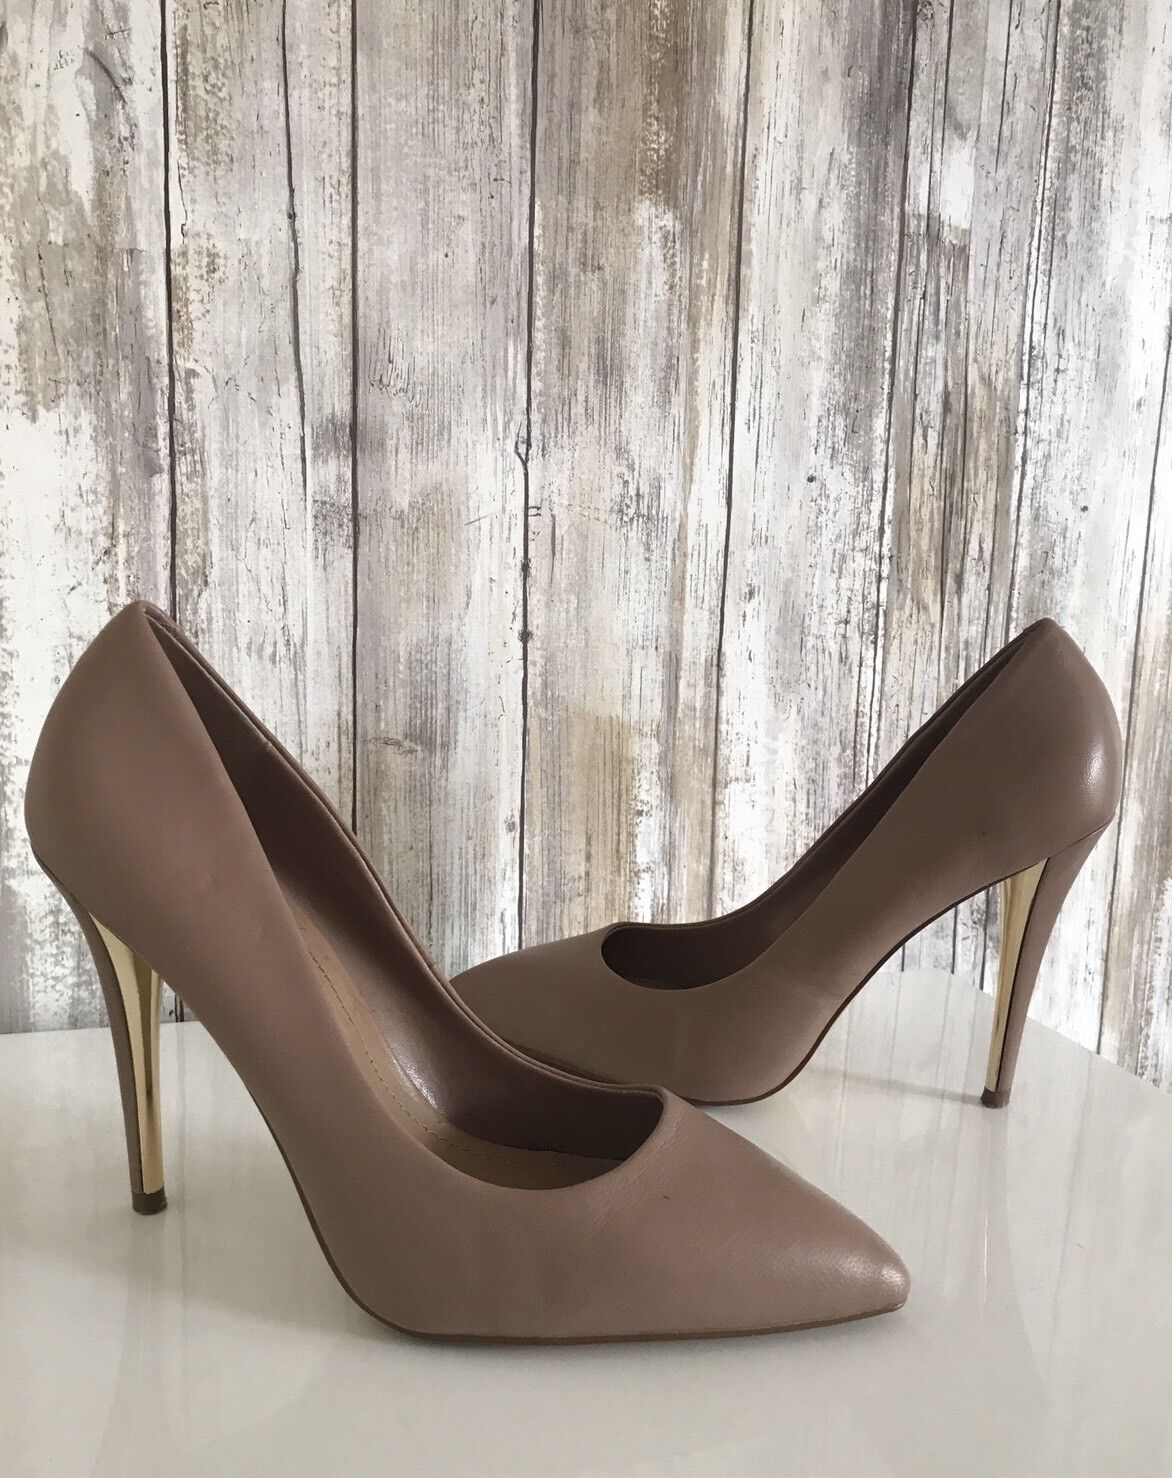 STEVE MADDEN Nude Beige Leather Gold Stiletto Heels 7.5 Classic RARE!